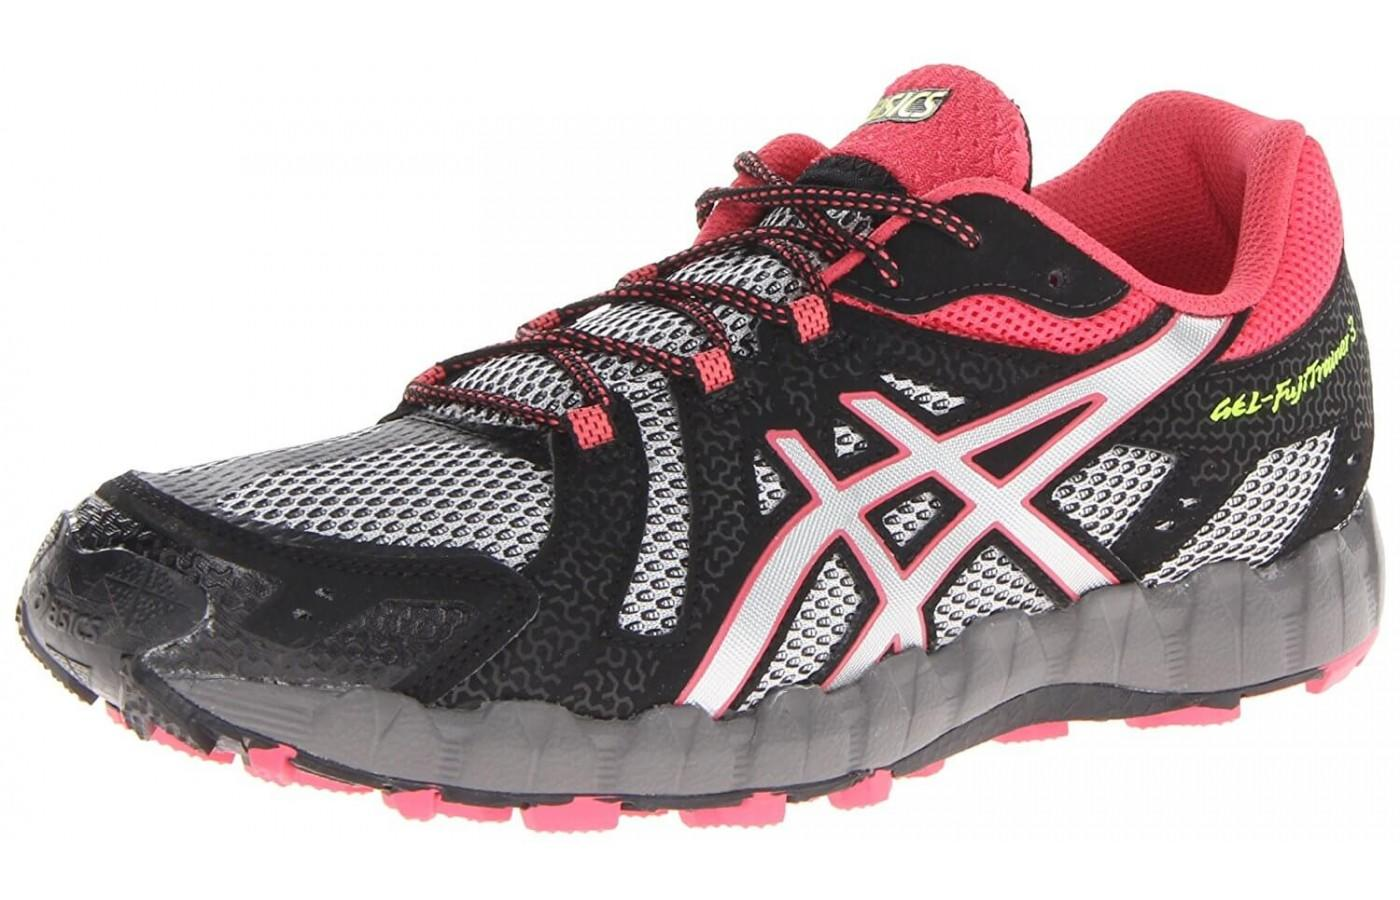 the Asics Gel FujiTrainer 3 shown from the front/side